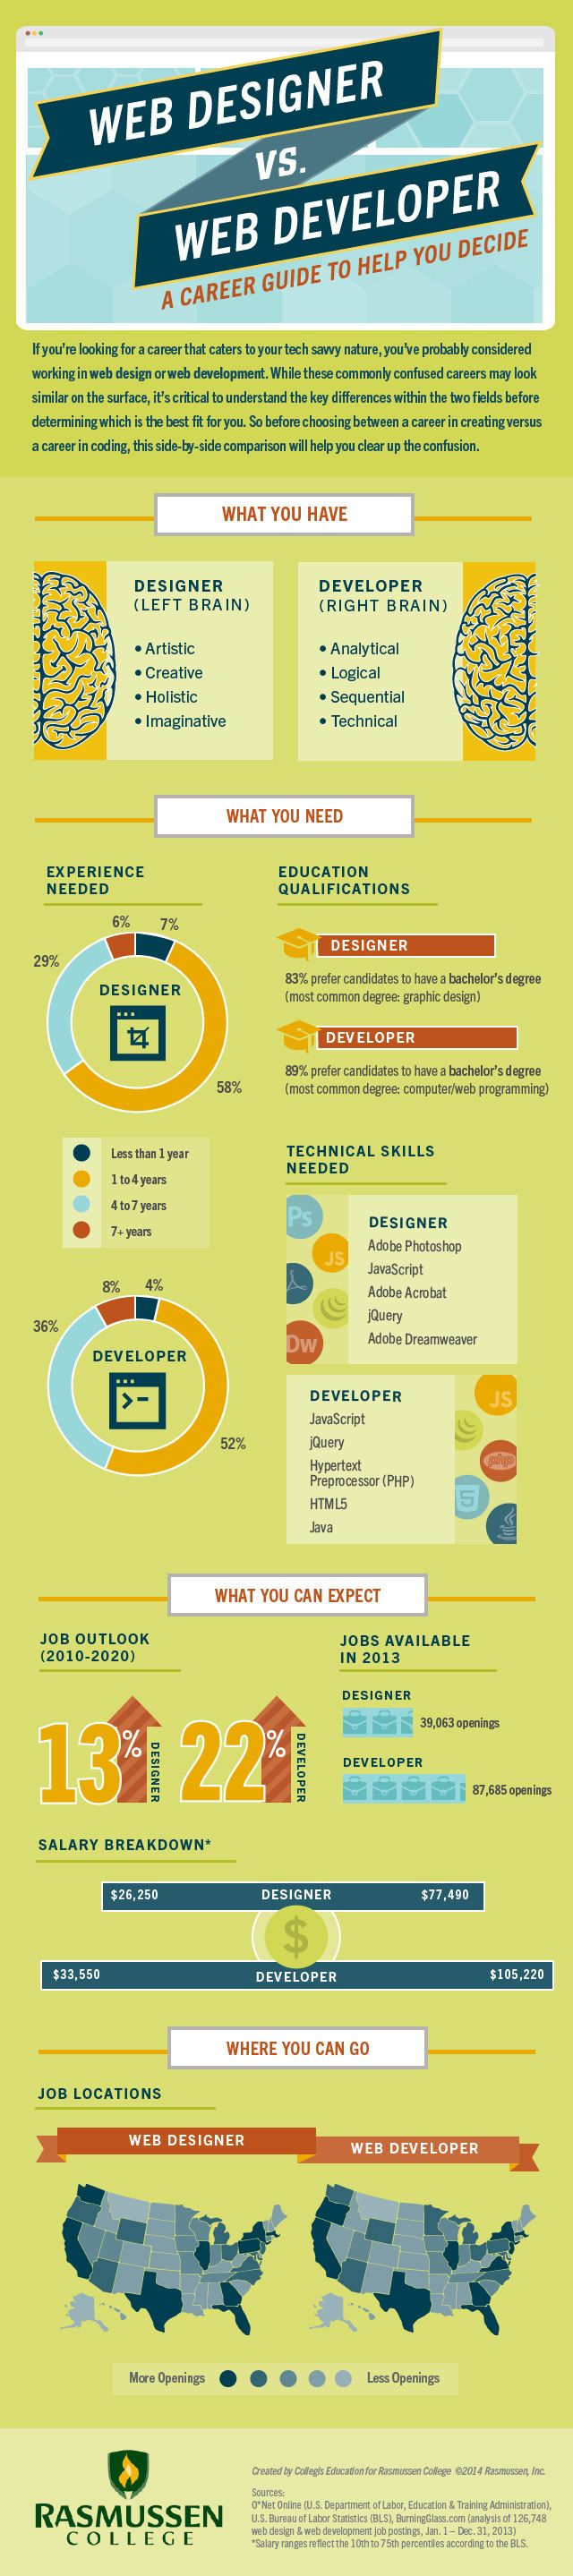 Web Designer vs. Web Developer: A Career Guide to Help You Decide